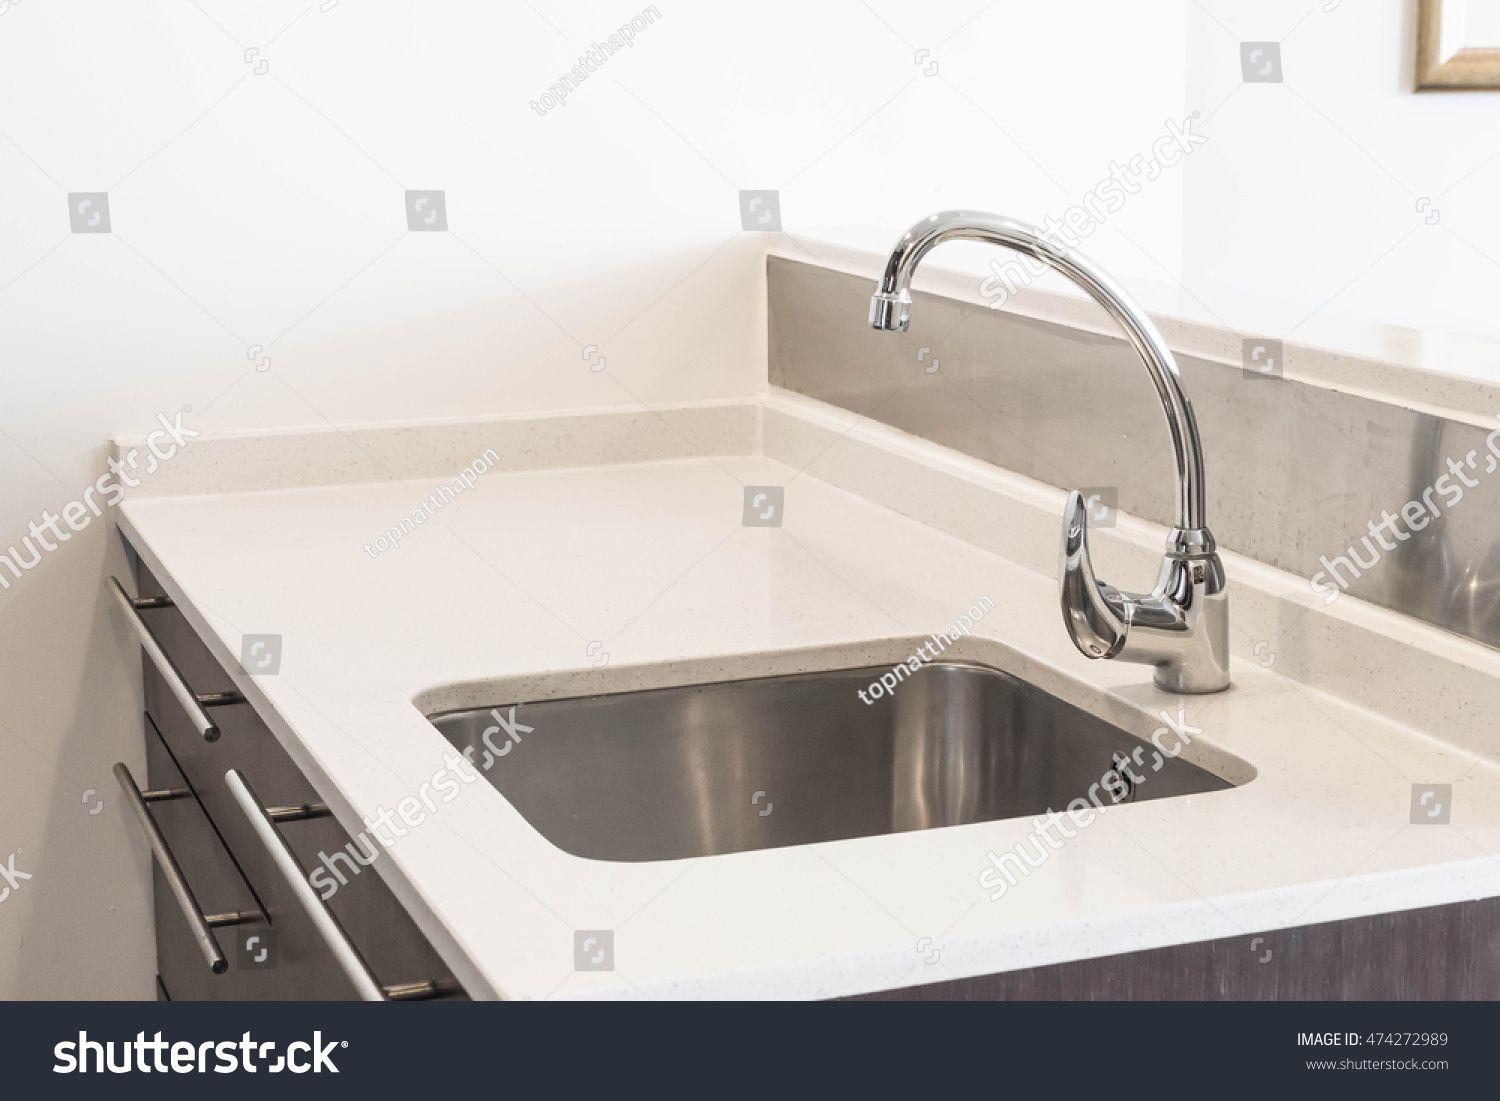 Faucet Sink Water Tab Decoration Kitchen Stock Photo (Royalty Free ...